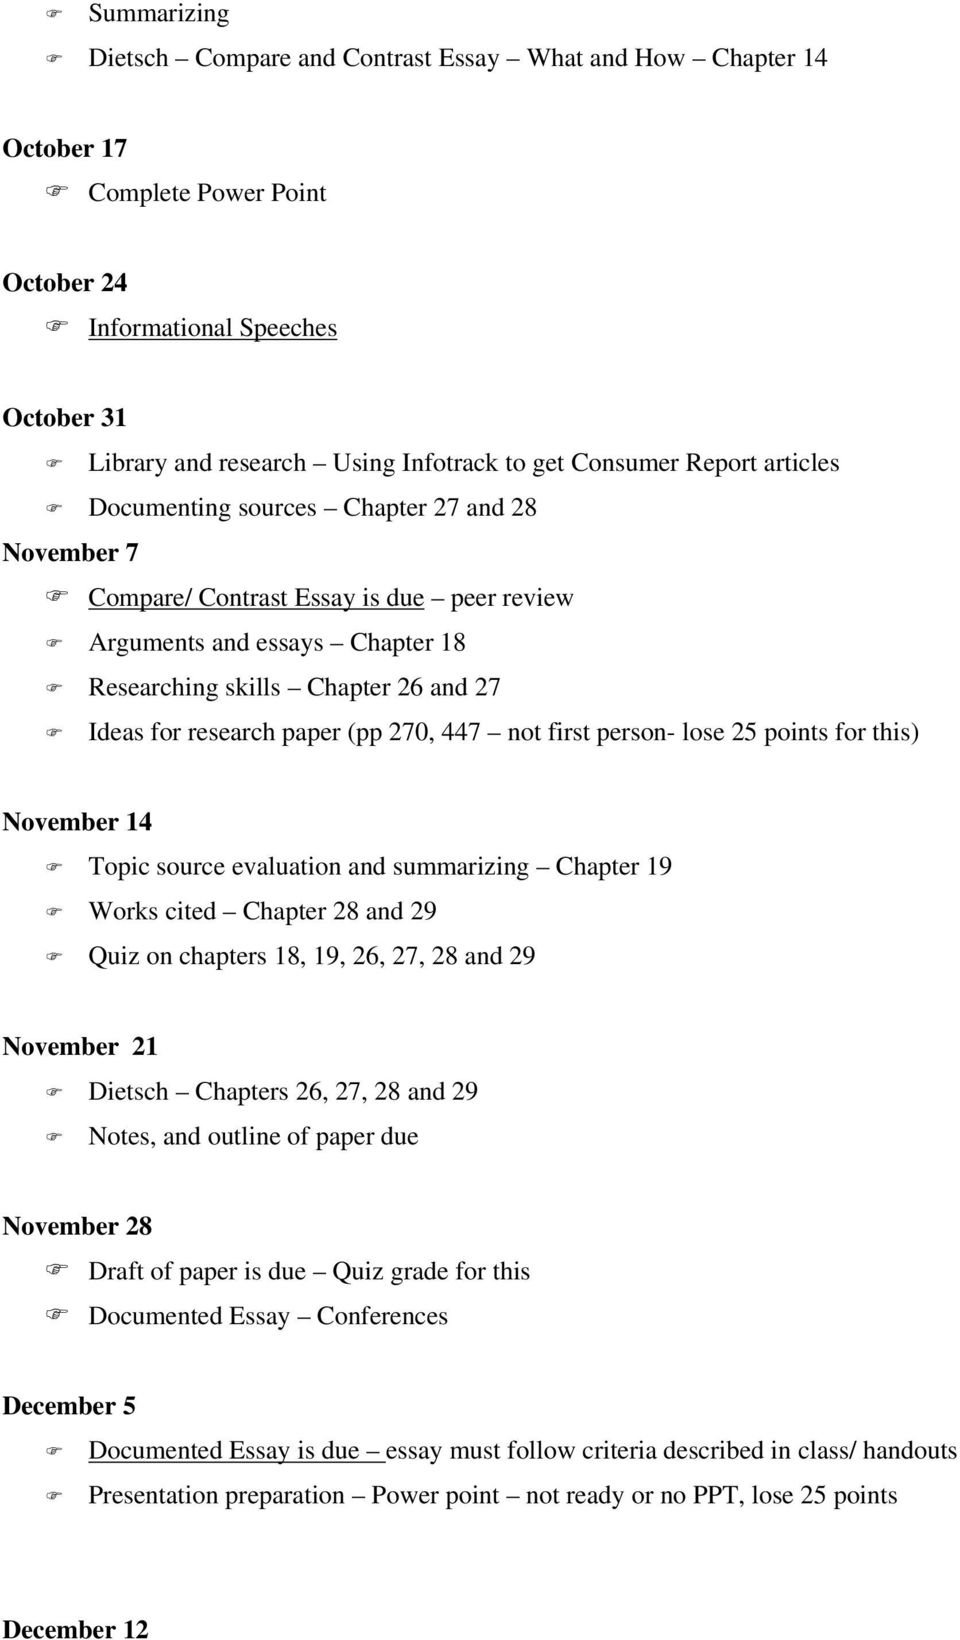 research paper (pp 270, 447 not first person- lose 25 points for this) November 14 Topic source evaluation and summarizing Chapter 19 Works cited Chapter 28 and 29 Quiz on chapters 18, 19, 26, 27, 28